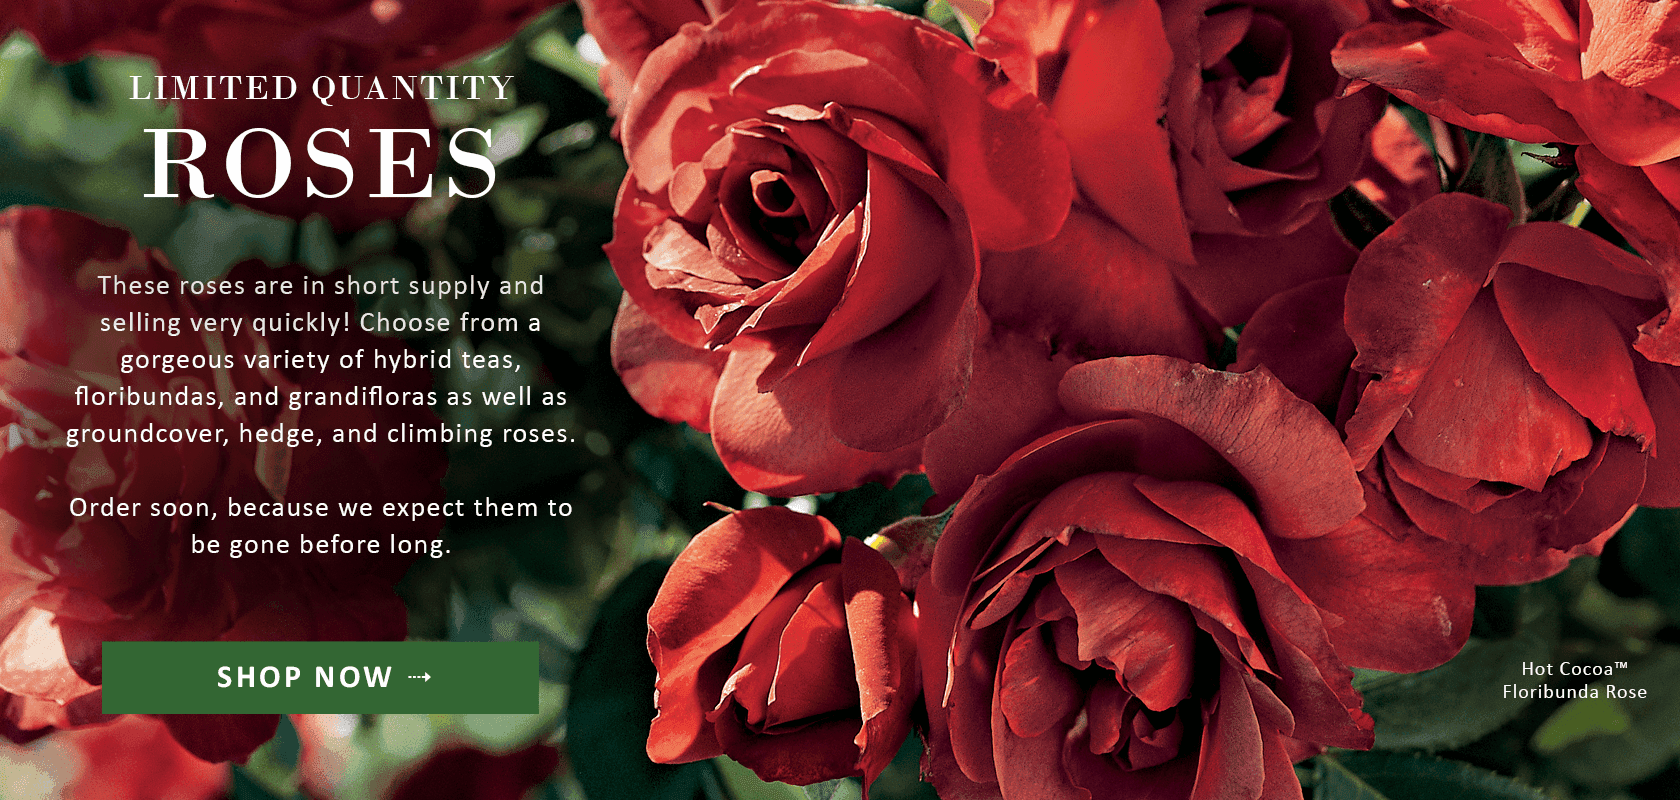 Limited Quantity Roses -- These roses are in short supply and selling very quickly! Reserve yours now